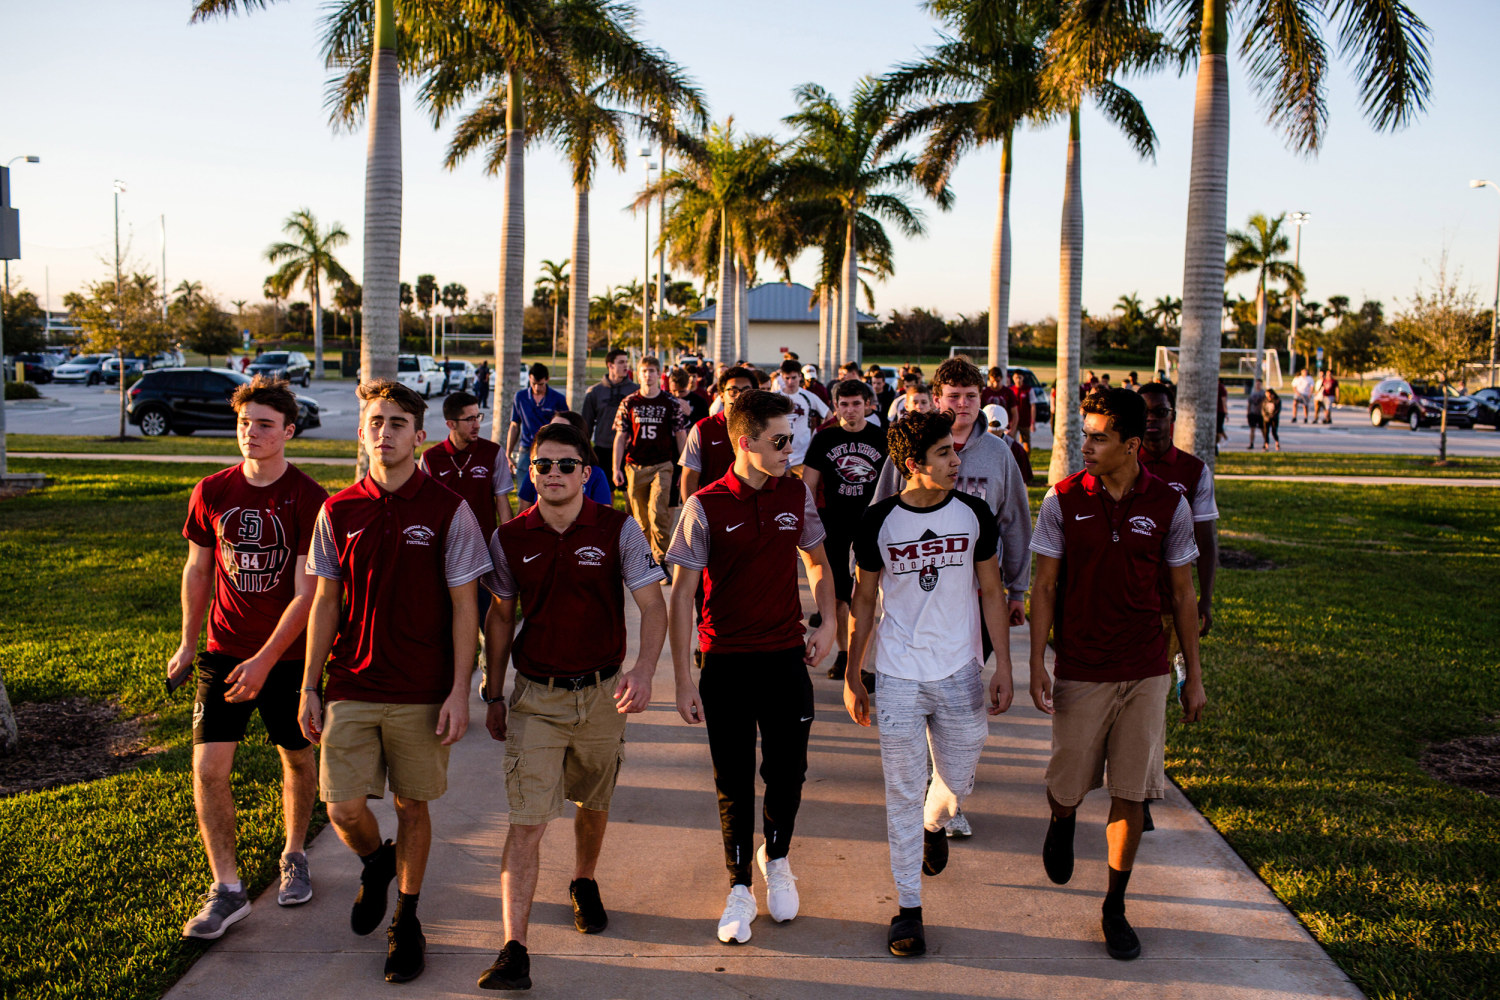 Members of the football team at Marjory Stoneman Douglas High School walk together before a vigil to honor victims of the mass shooting at their school in Parkland, Florida on Feb. 15, 2018. Saul Martinez / Redux Pictures